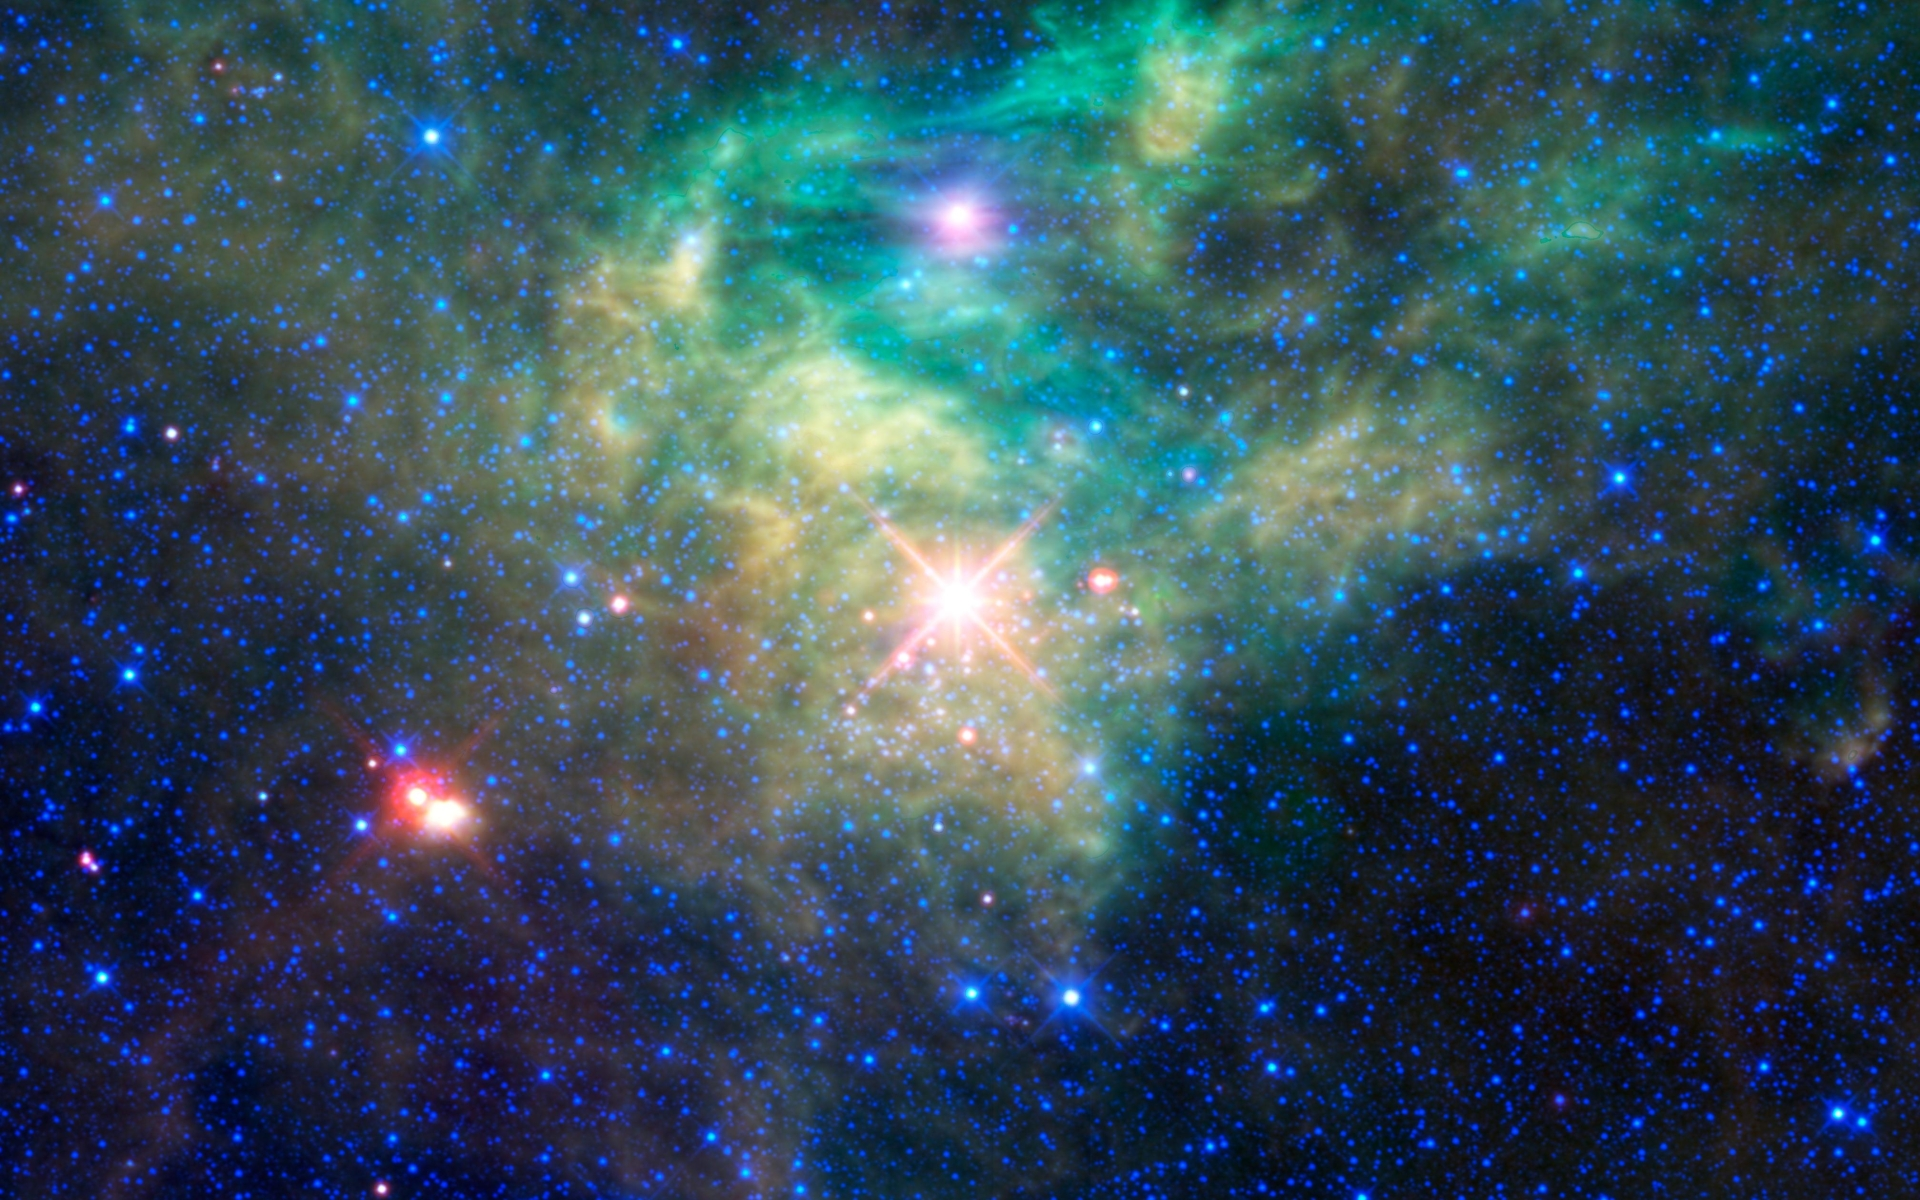 Nebula Computer Wallpapers, Desktop Backgrounds 1920x1200 Id: 107894